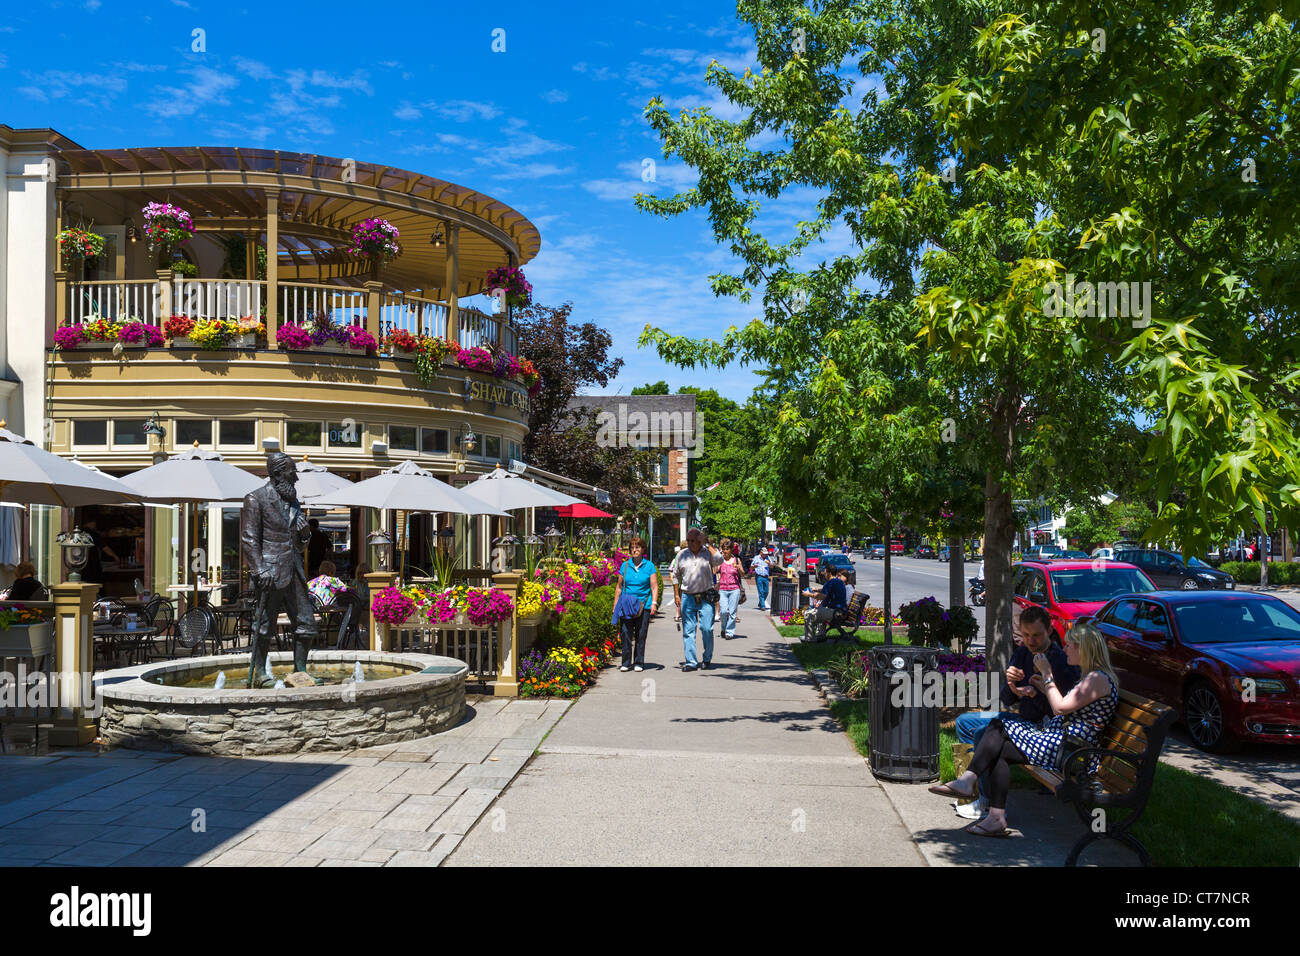 The Shaw Cafe on Queen Street, Niagara-on-the-Lake, Ontario, Canada - Stock Image